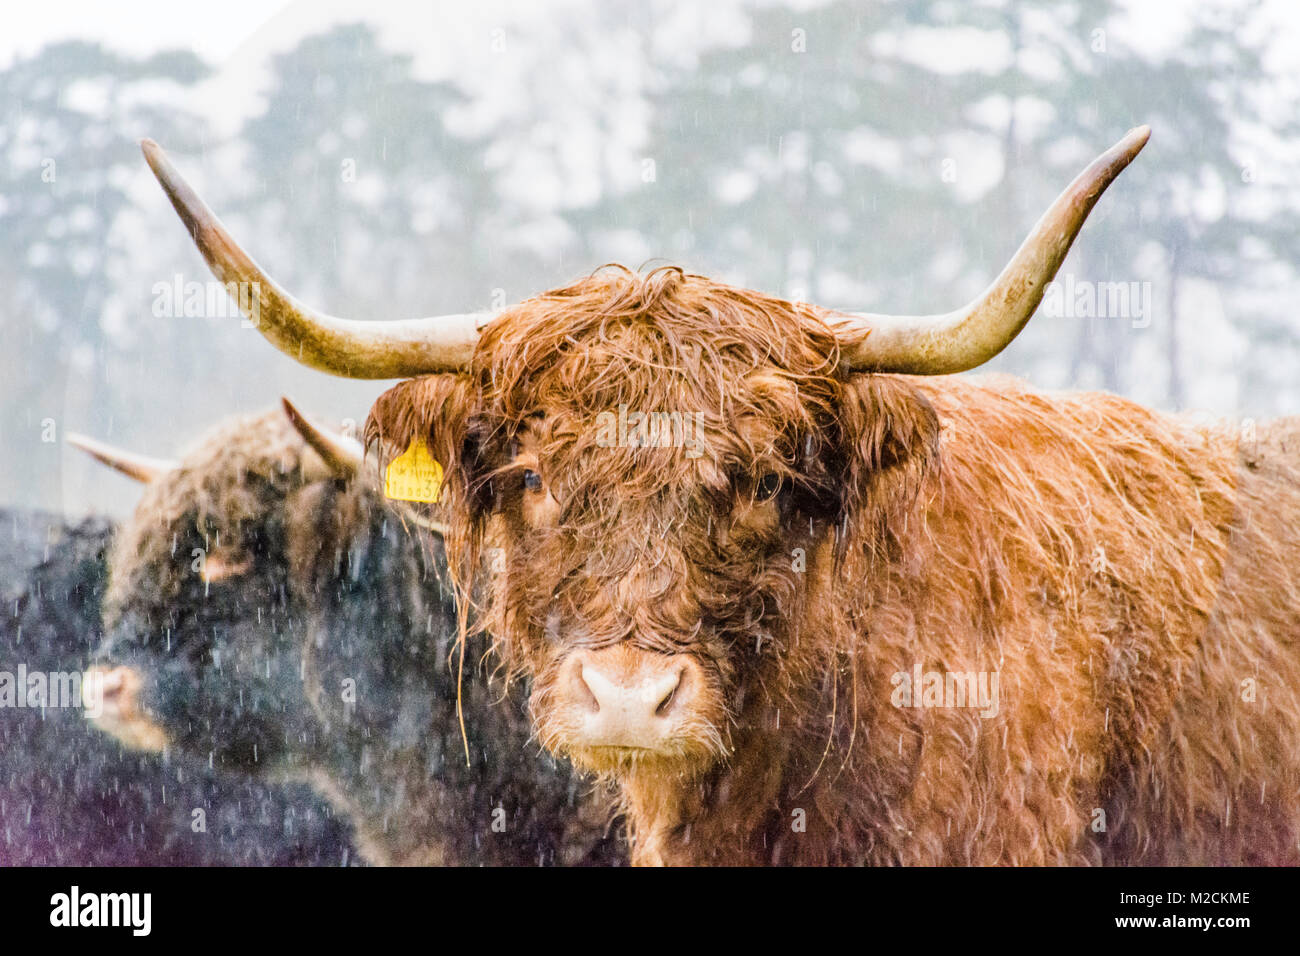 a highland cow during winter - Stock Image